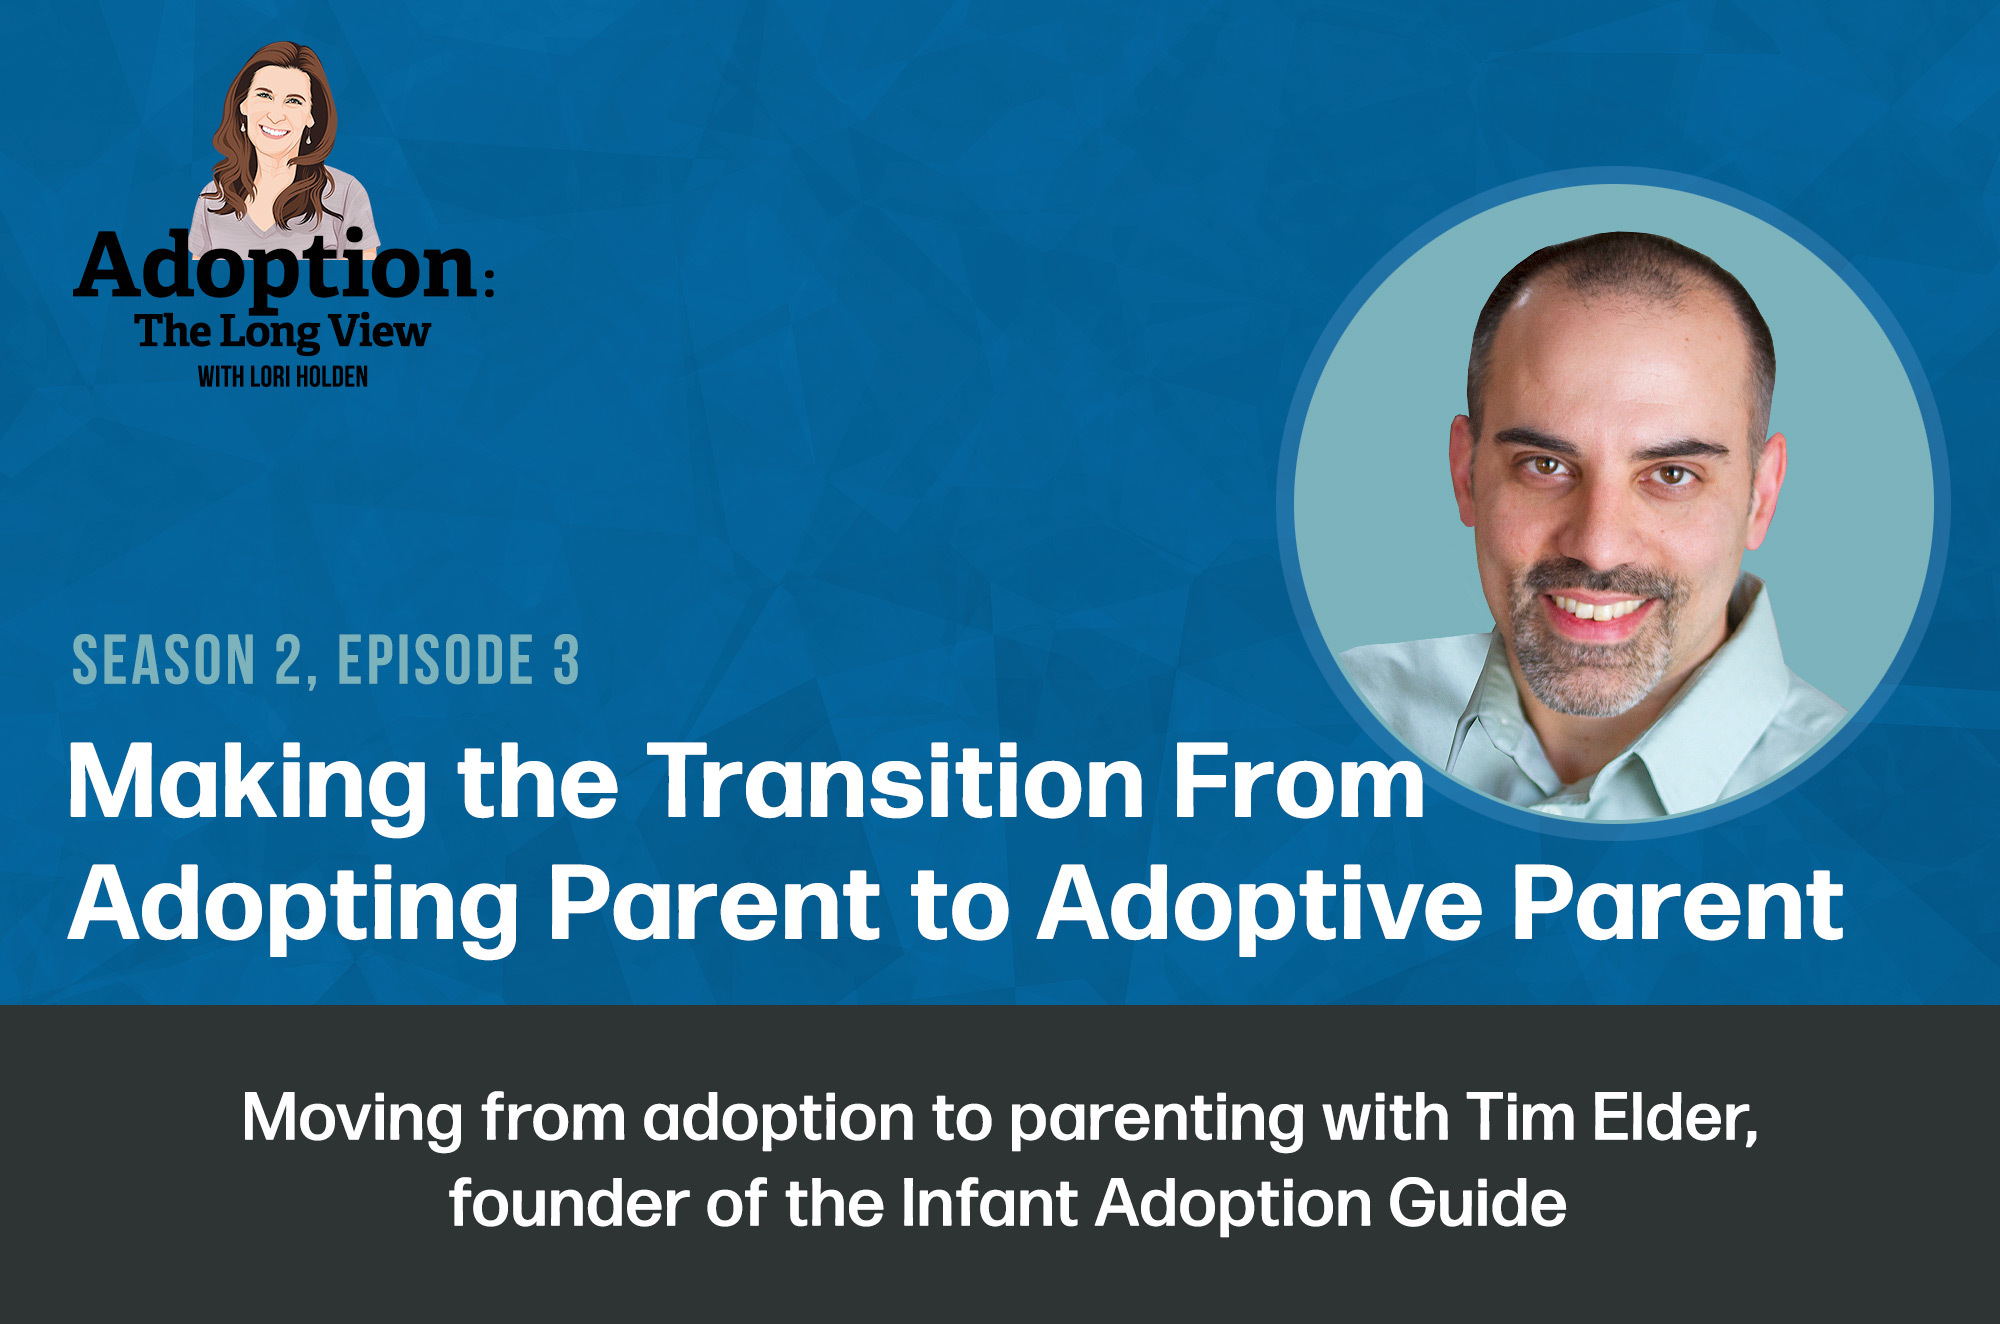 From adopting to parenting with tim elder